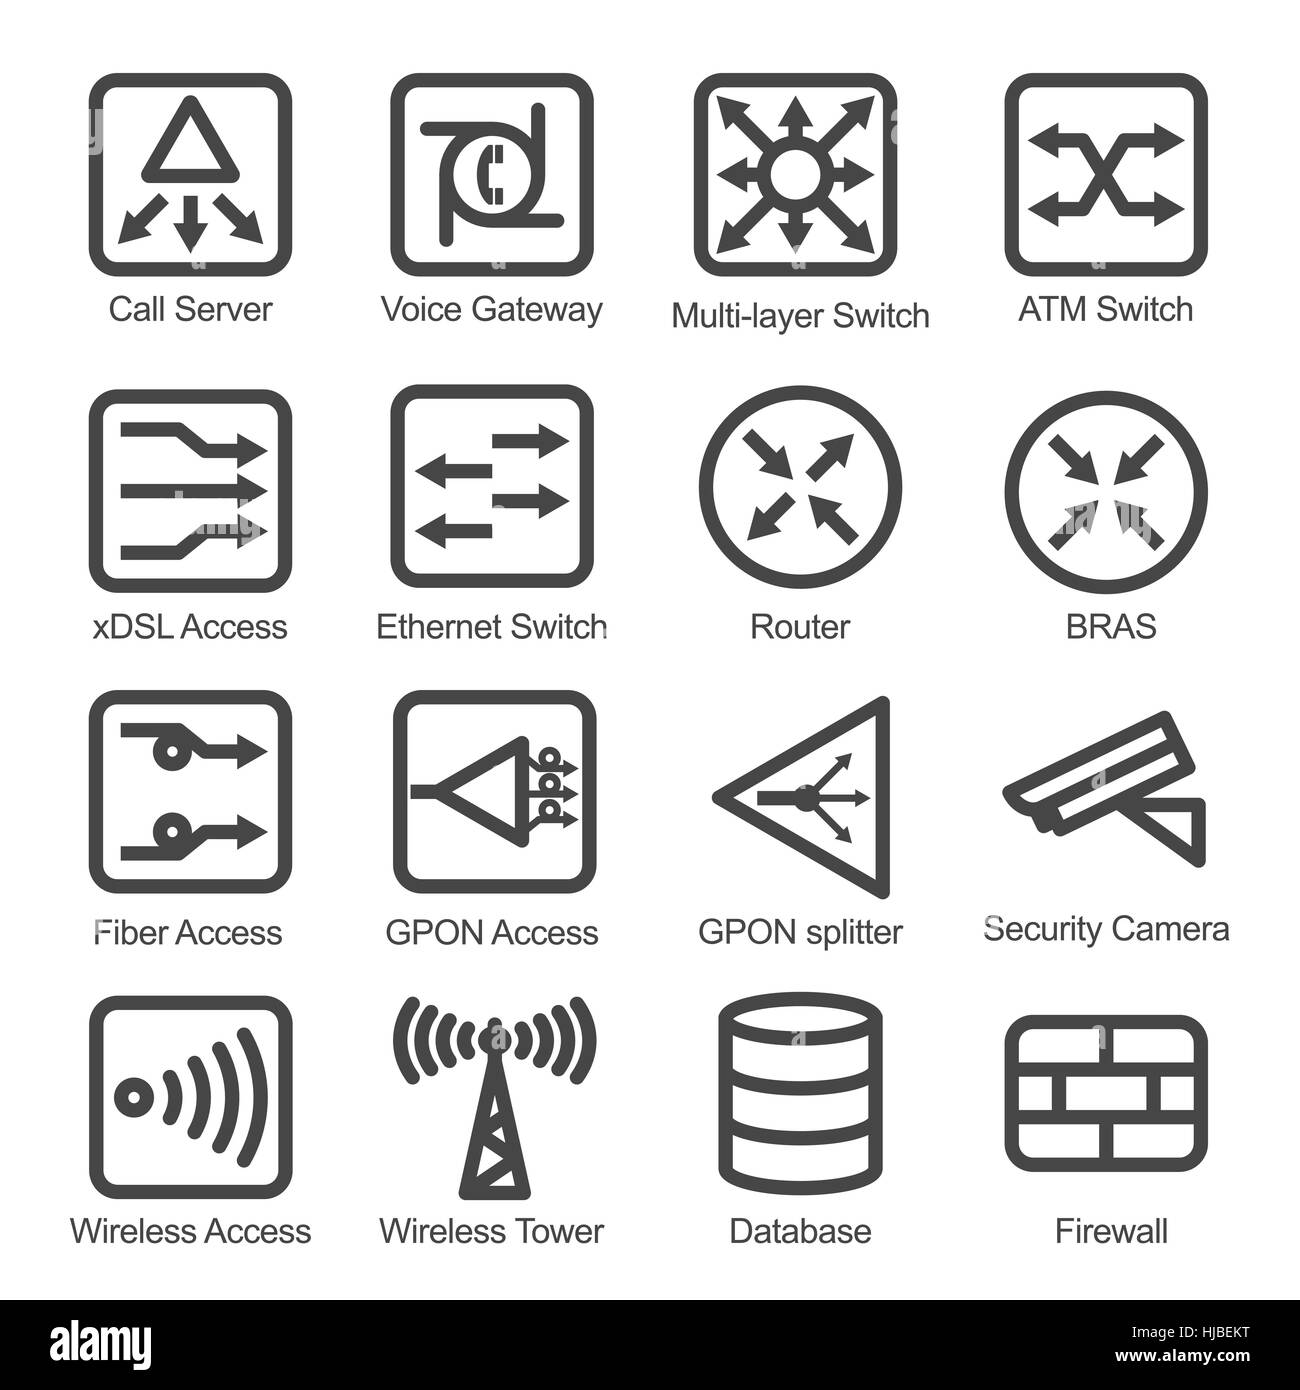 Network Equipment Icons : Network equipment icon set isolated vector illustration